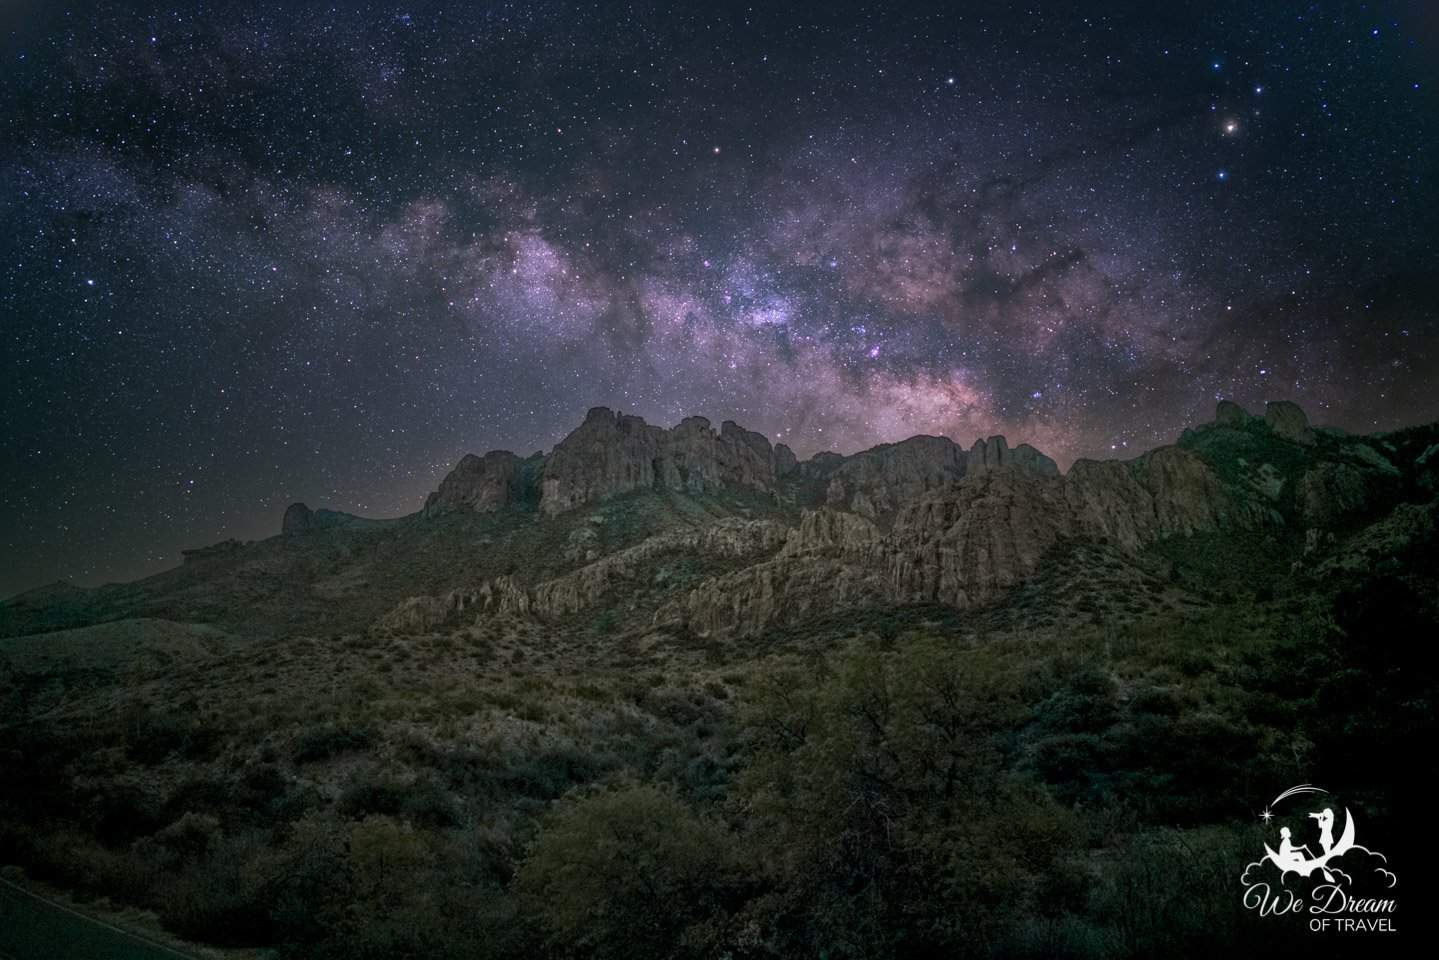 Milky Way night photography above the Chisos Mountains in Big Bend National Park